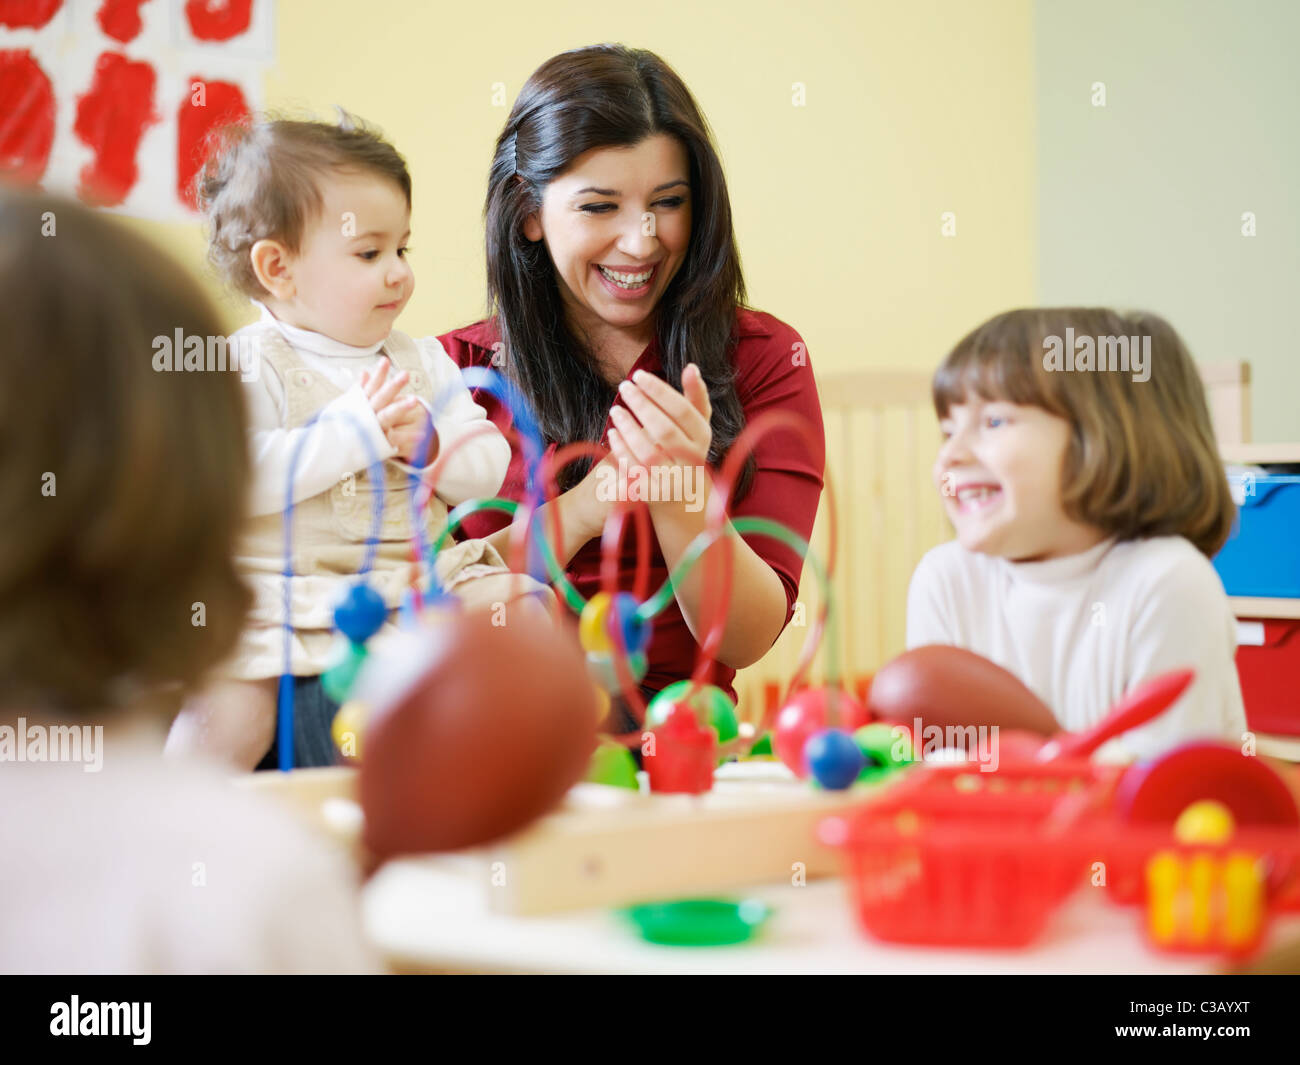 female toddler and 2-3 years girls playing with toys in kindergarten. Horizontal shape - Stock Image